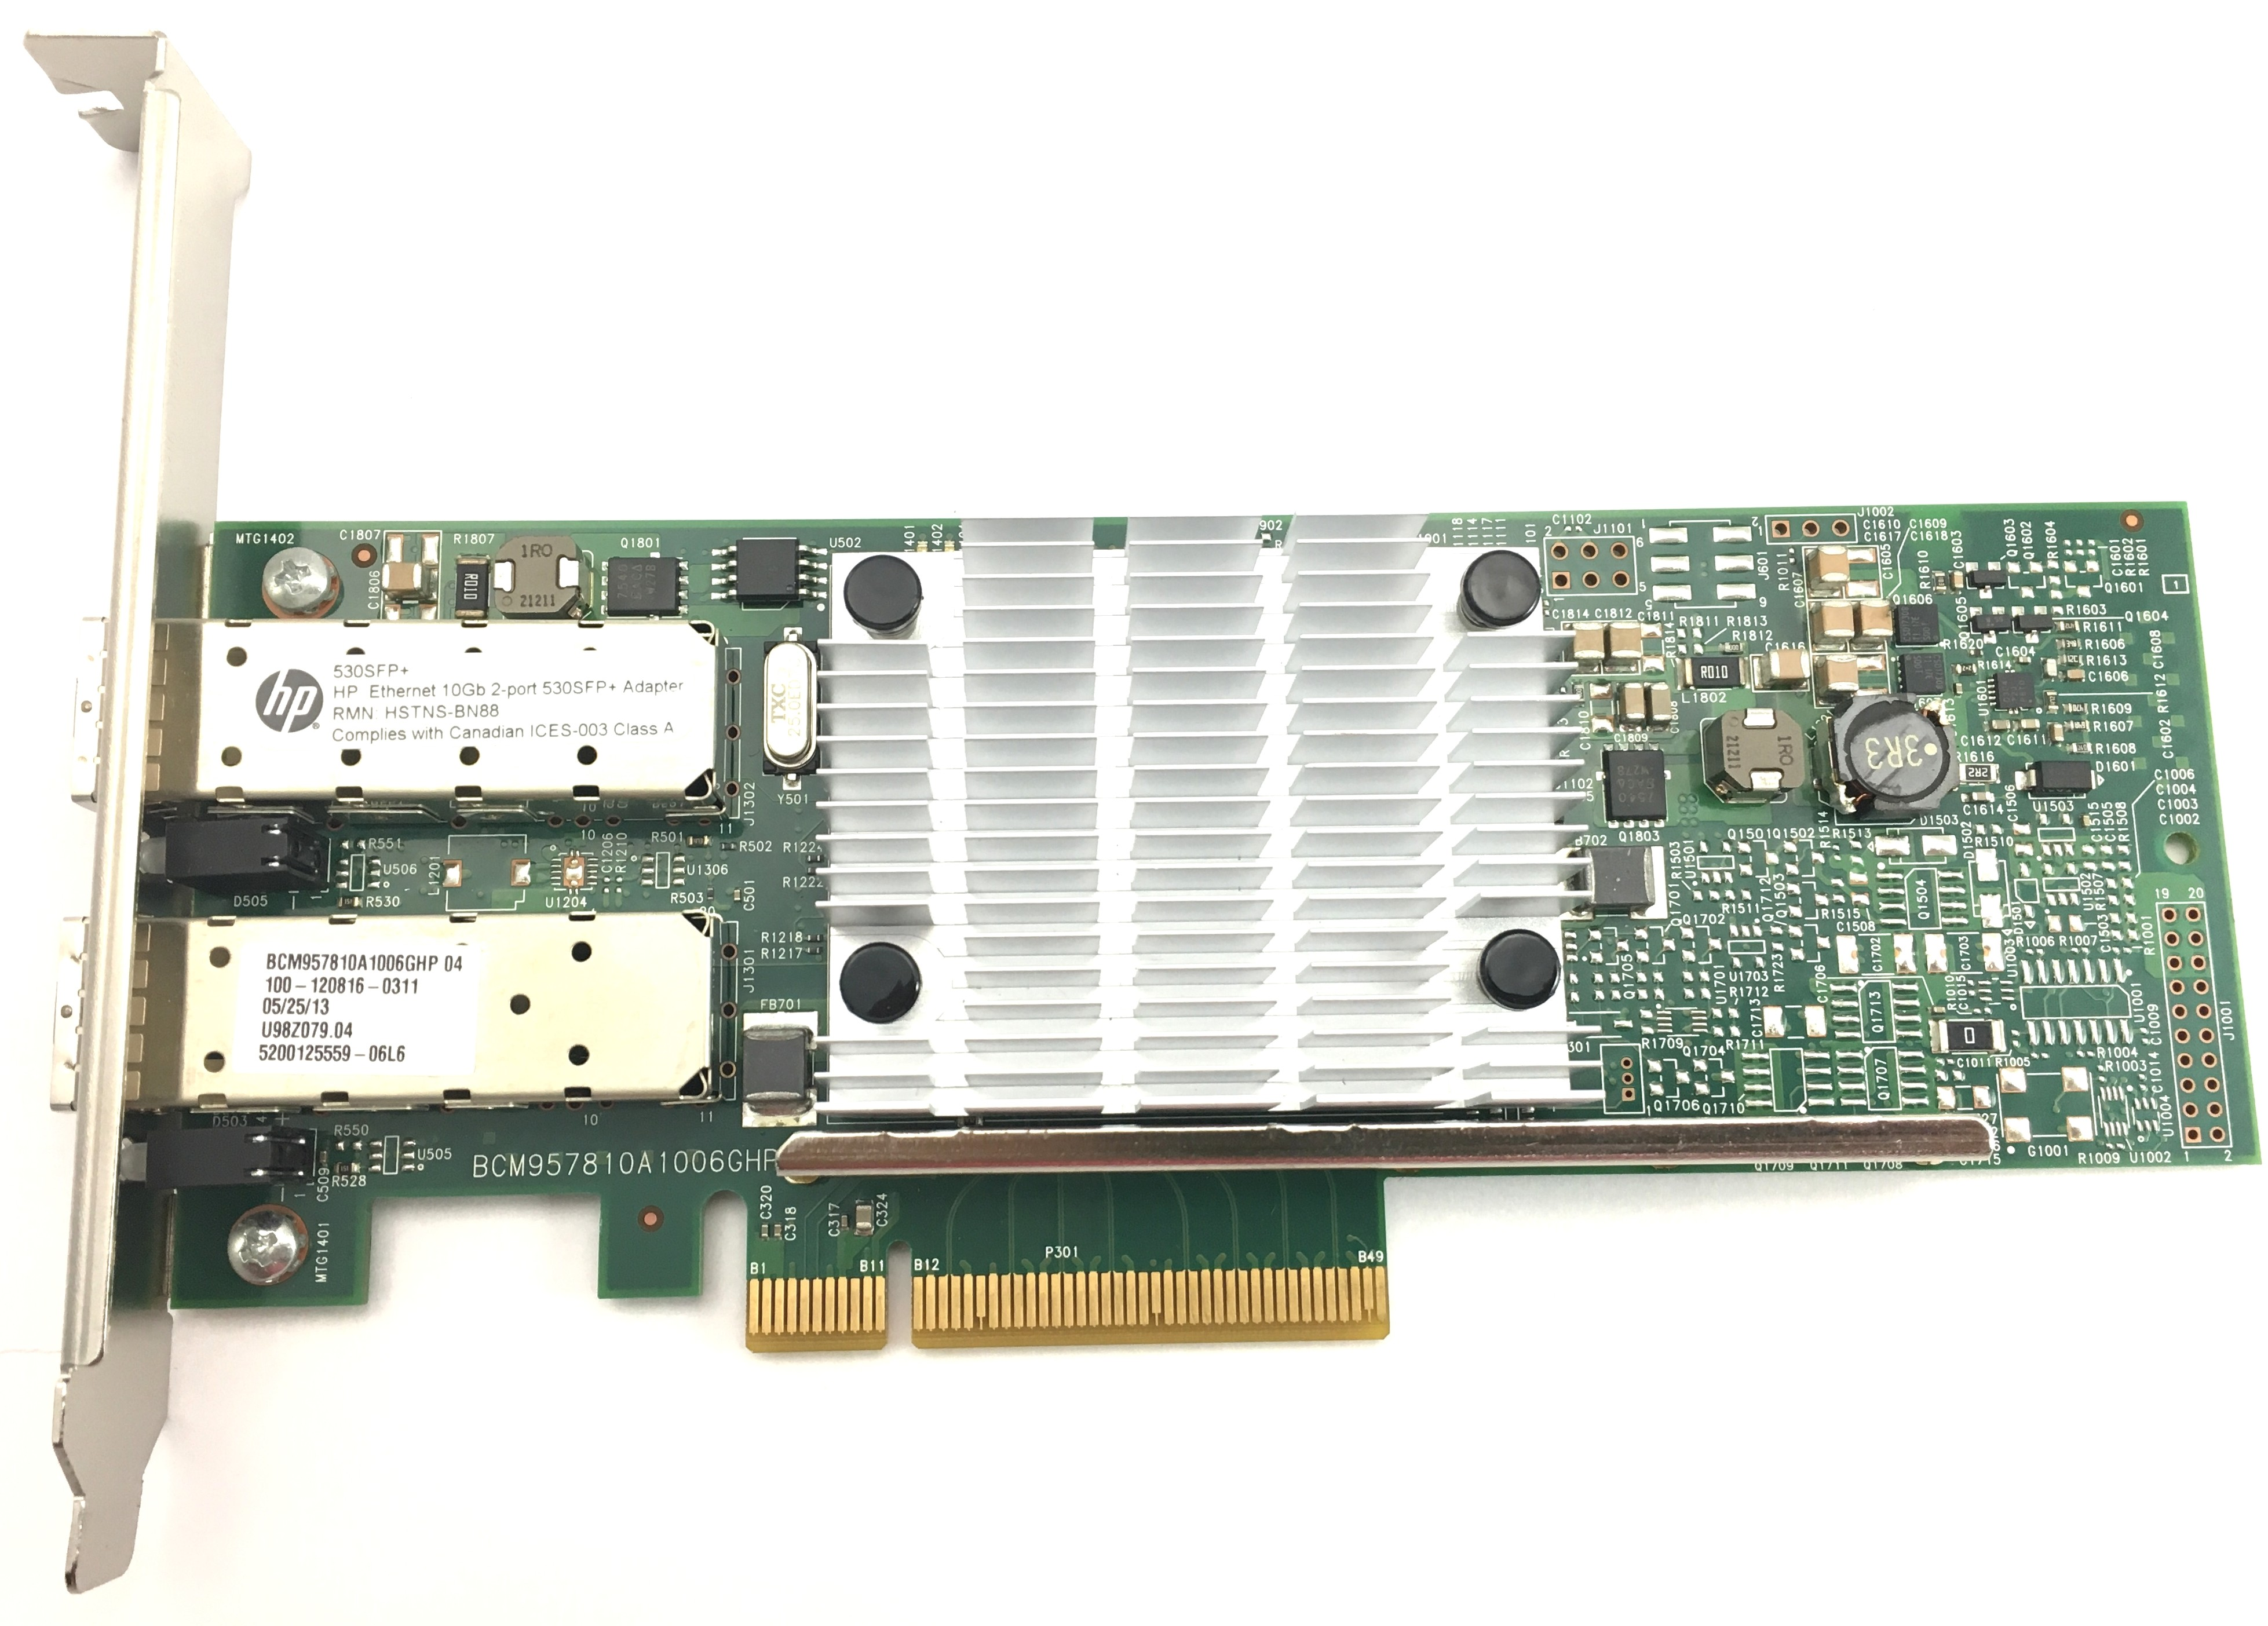 HP Ethernet 10GB 2-Port 530SFP+ Adapter Card (656244-001)